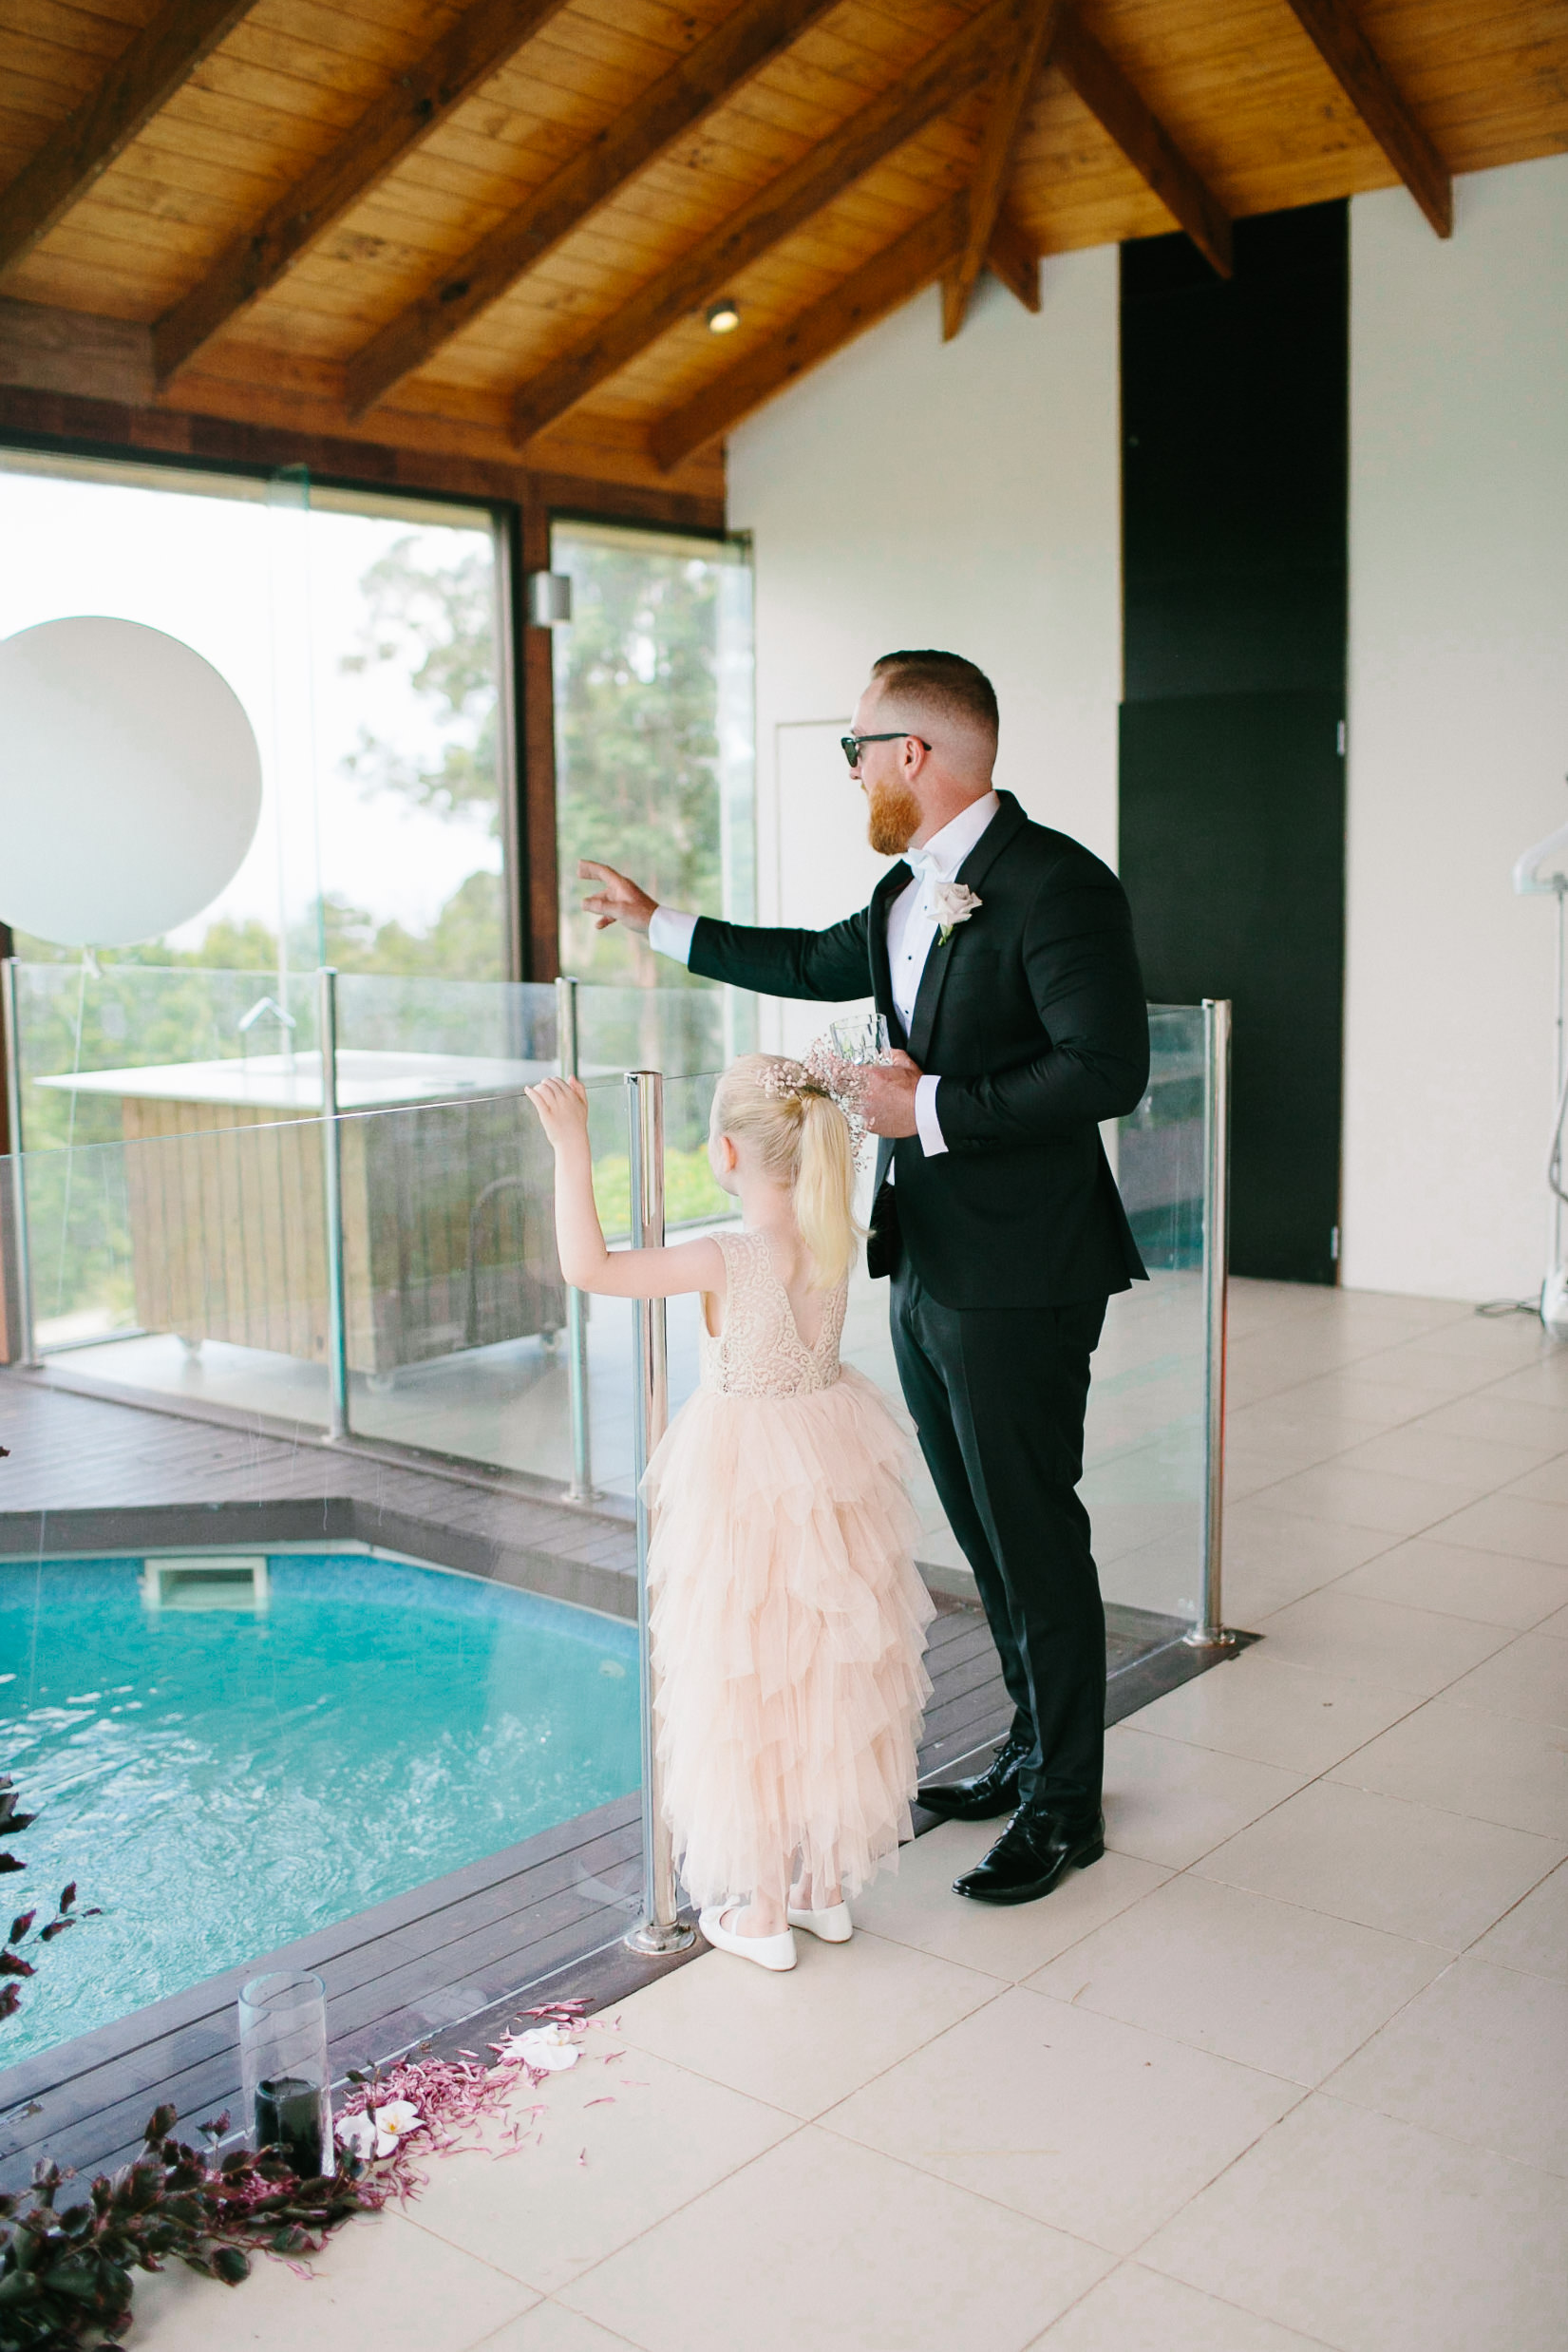 Bloodwood botanica | cutest moment wedding